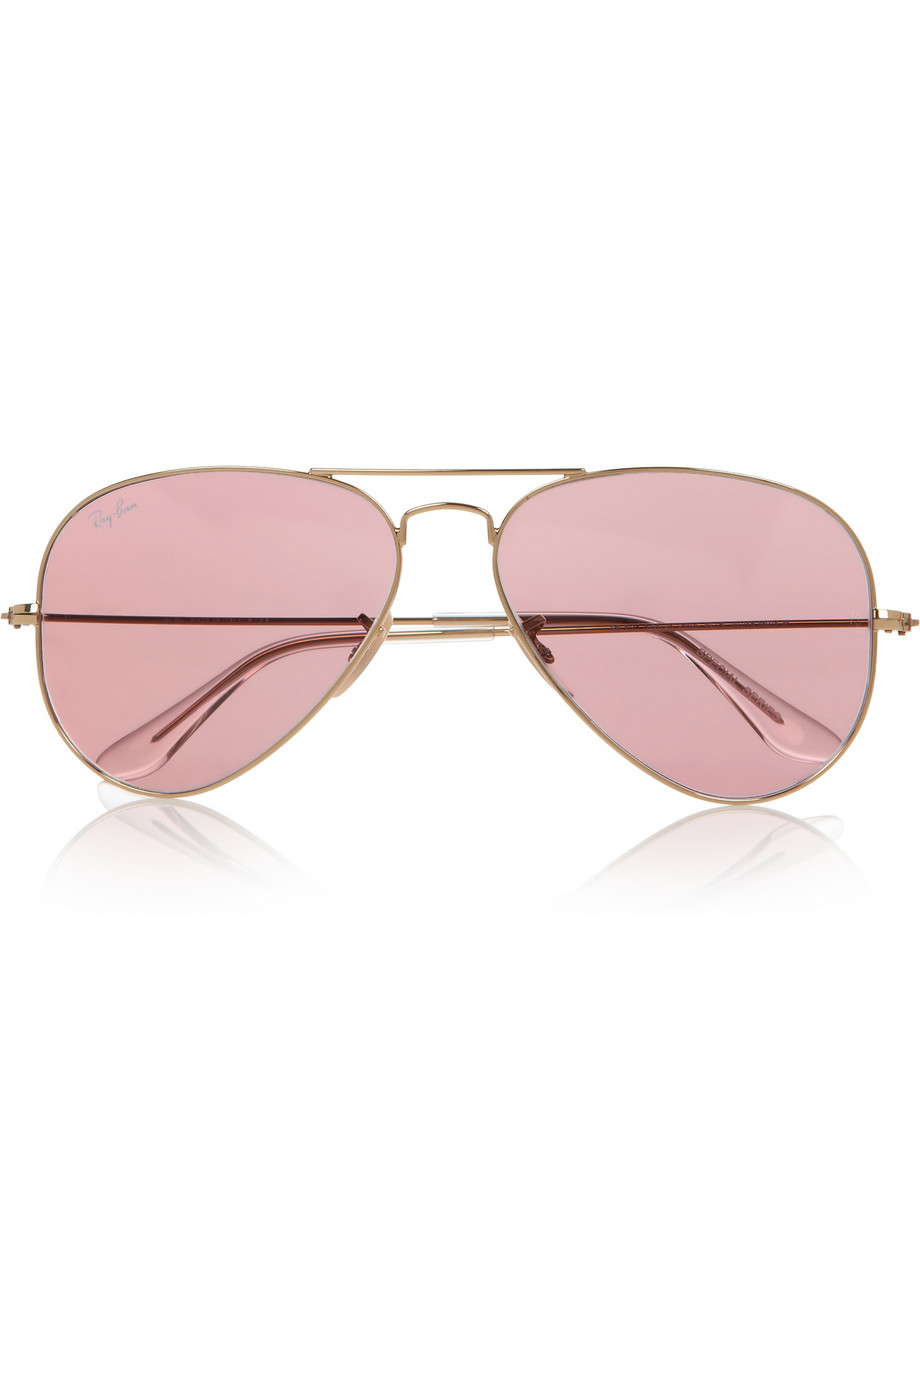 lyst ray ban aviator mirrored metal sunglasses in pink. Black Bedroom Furniture Sets. Home Design Ideas